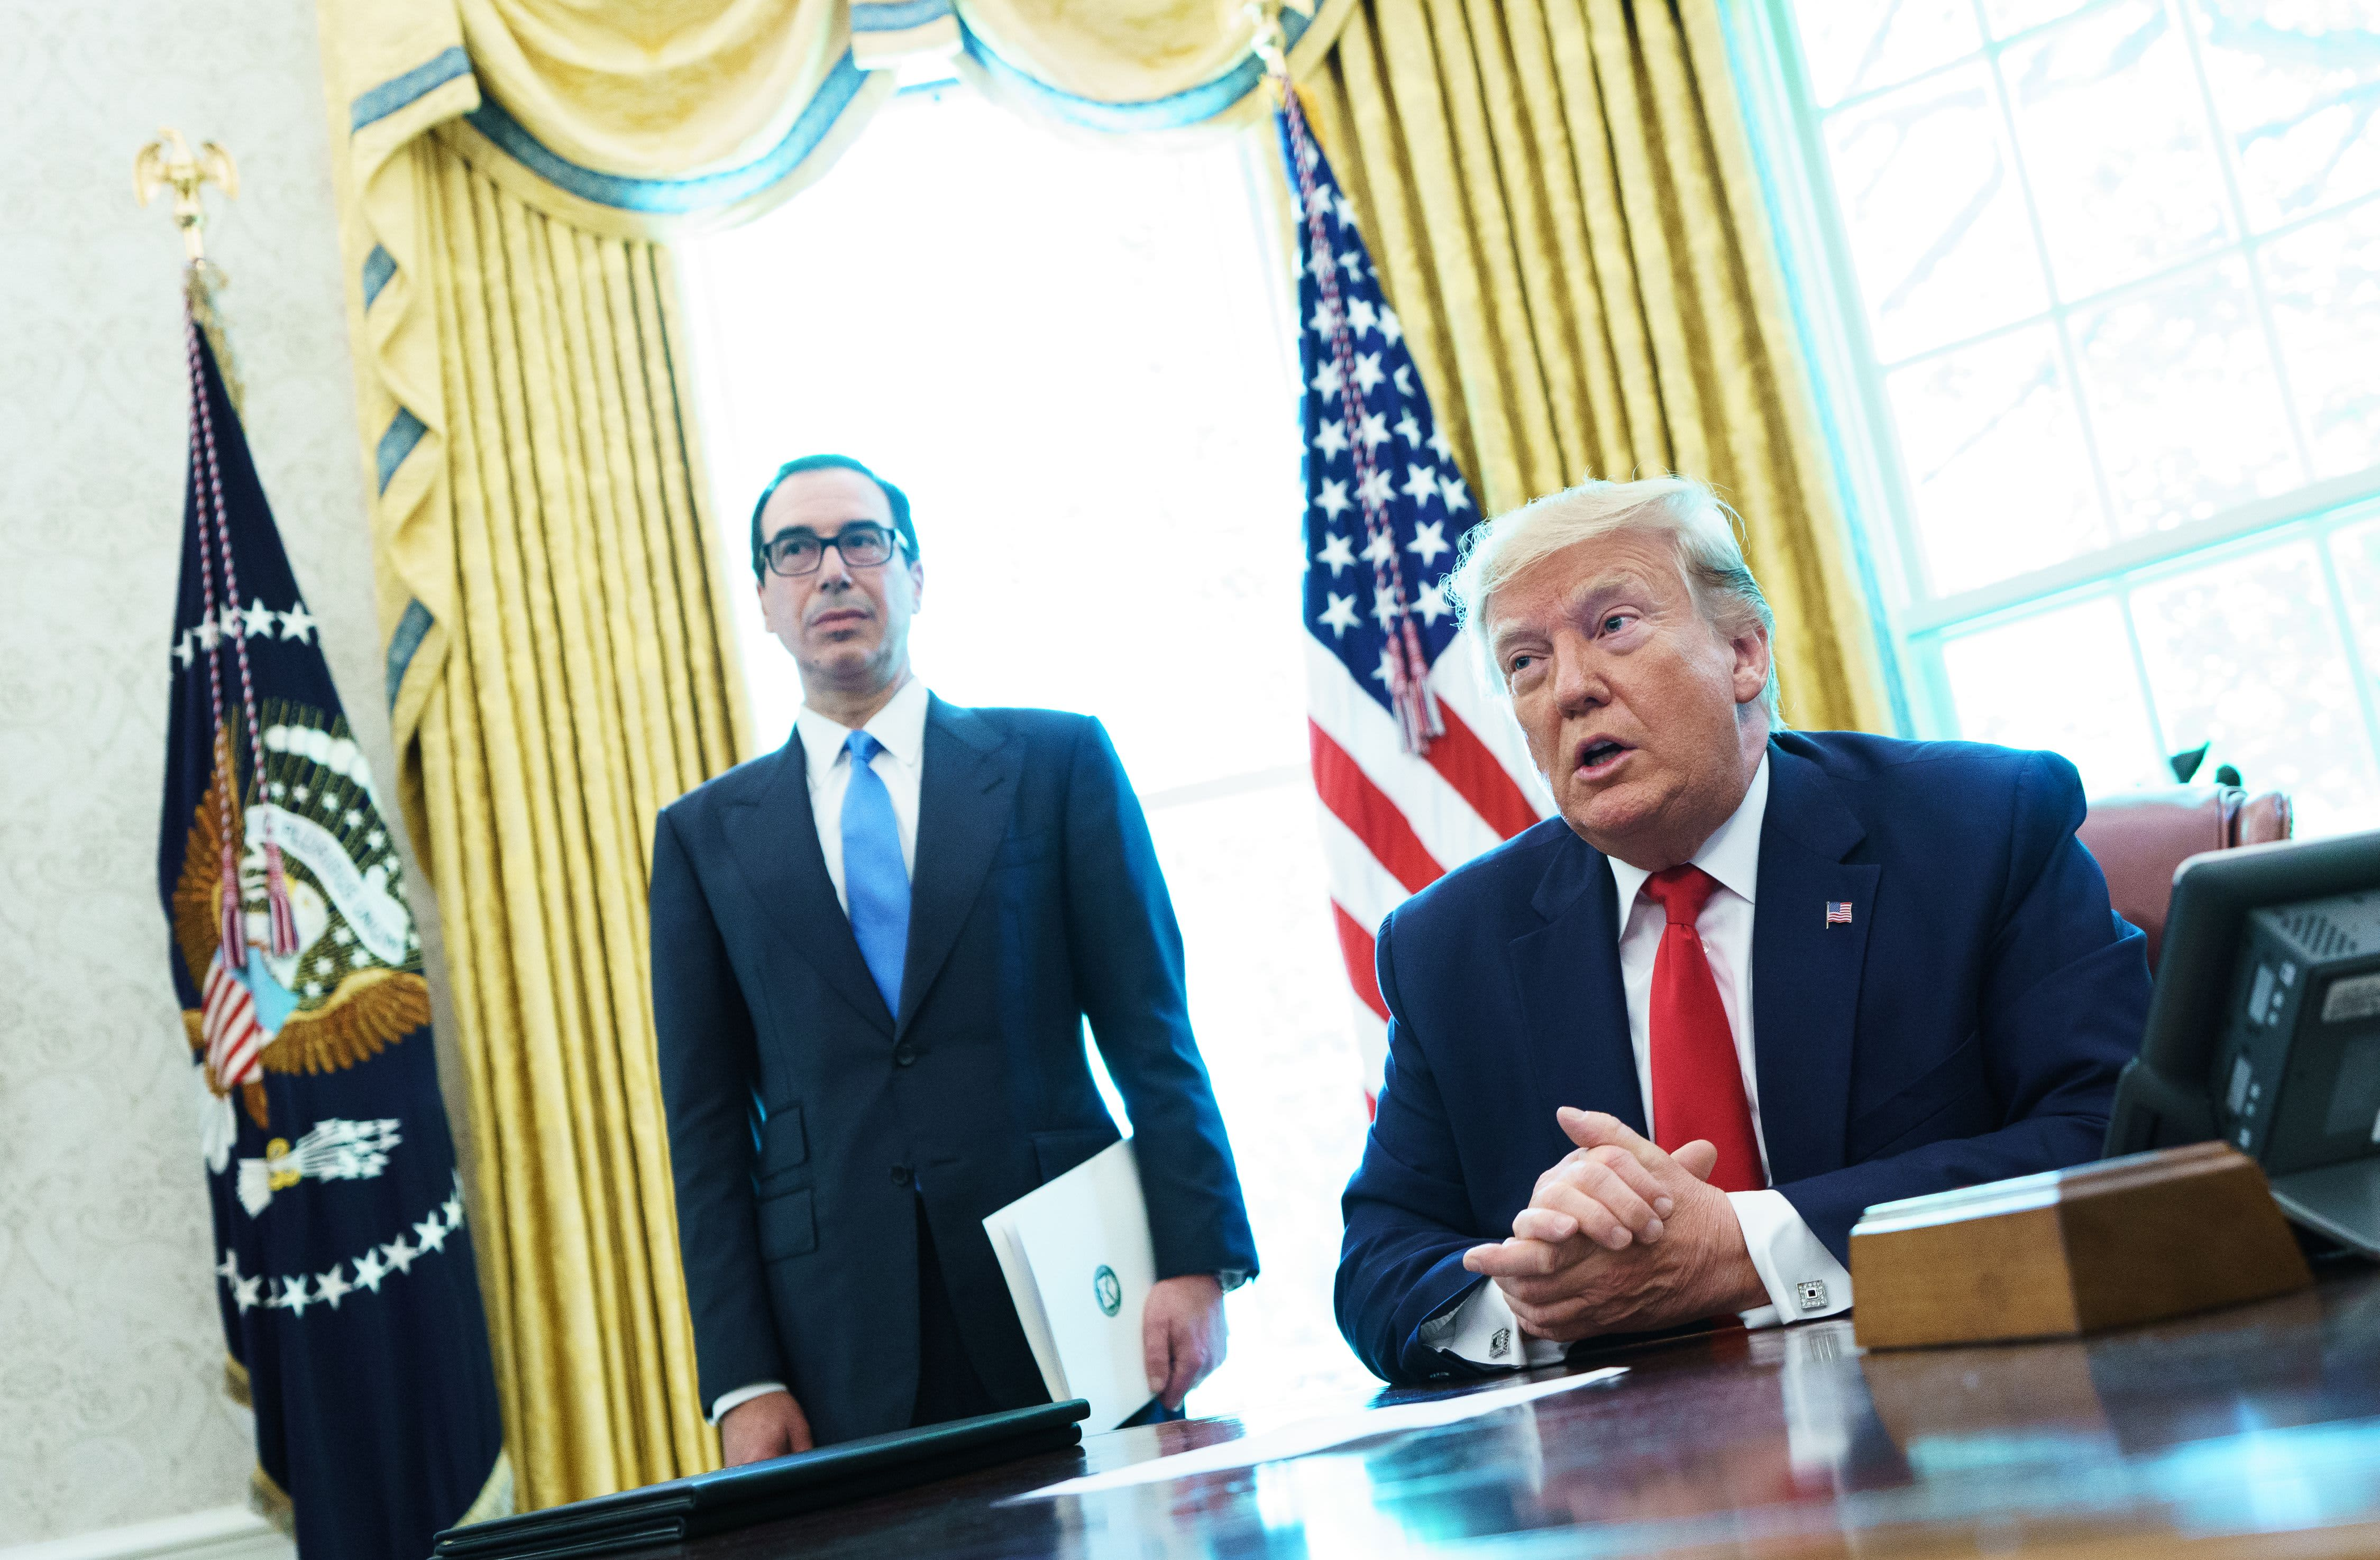 Trump orders Mnuchin to 'substantially increase' sanctions on Iran